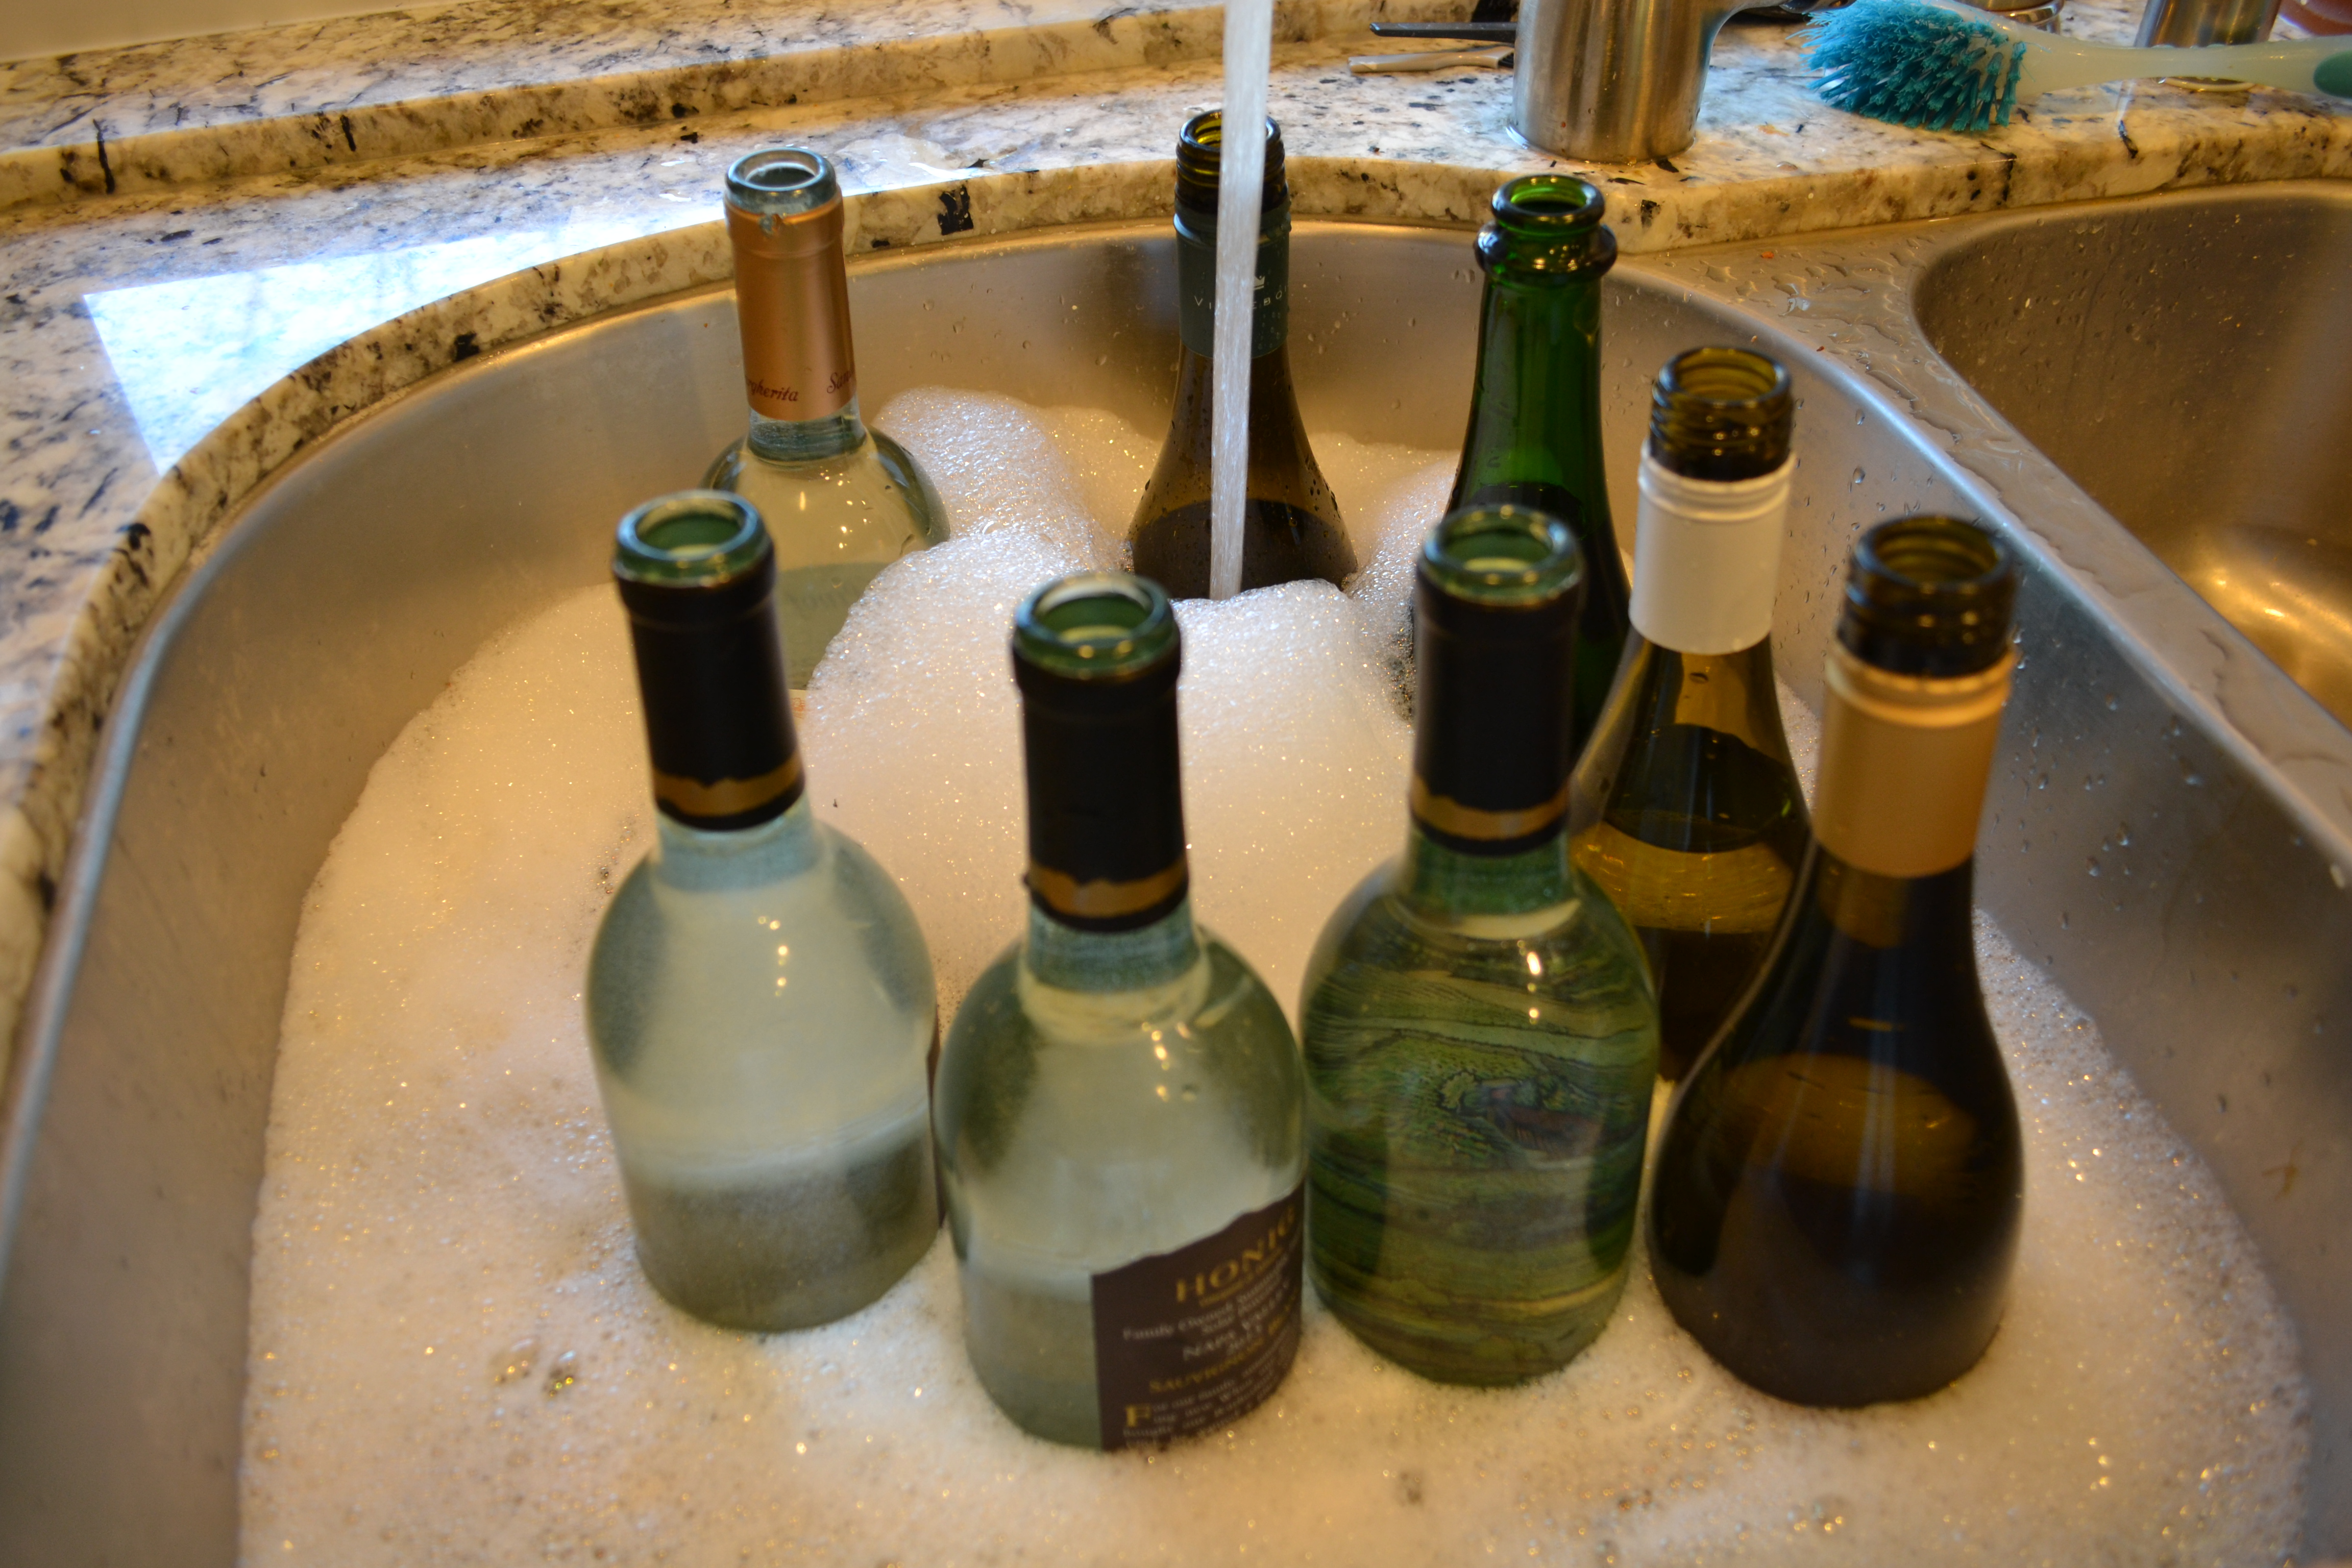 How to cut wine bottles to make vases miss bizi bee step 1 floridaeventfo Gallery